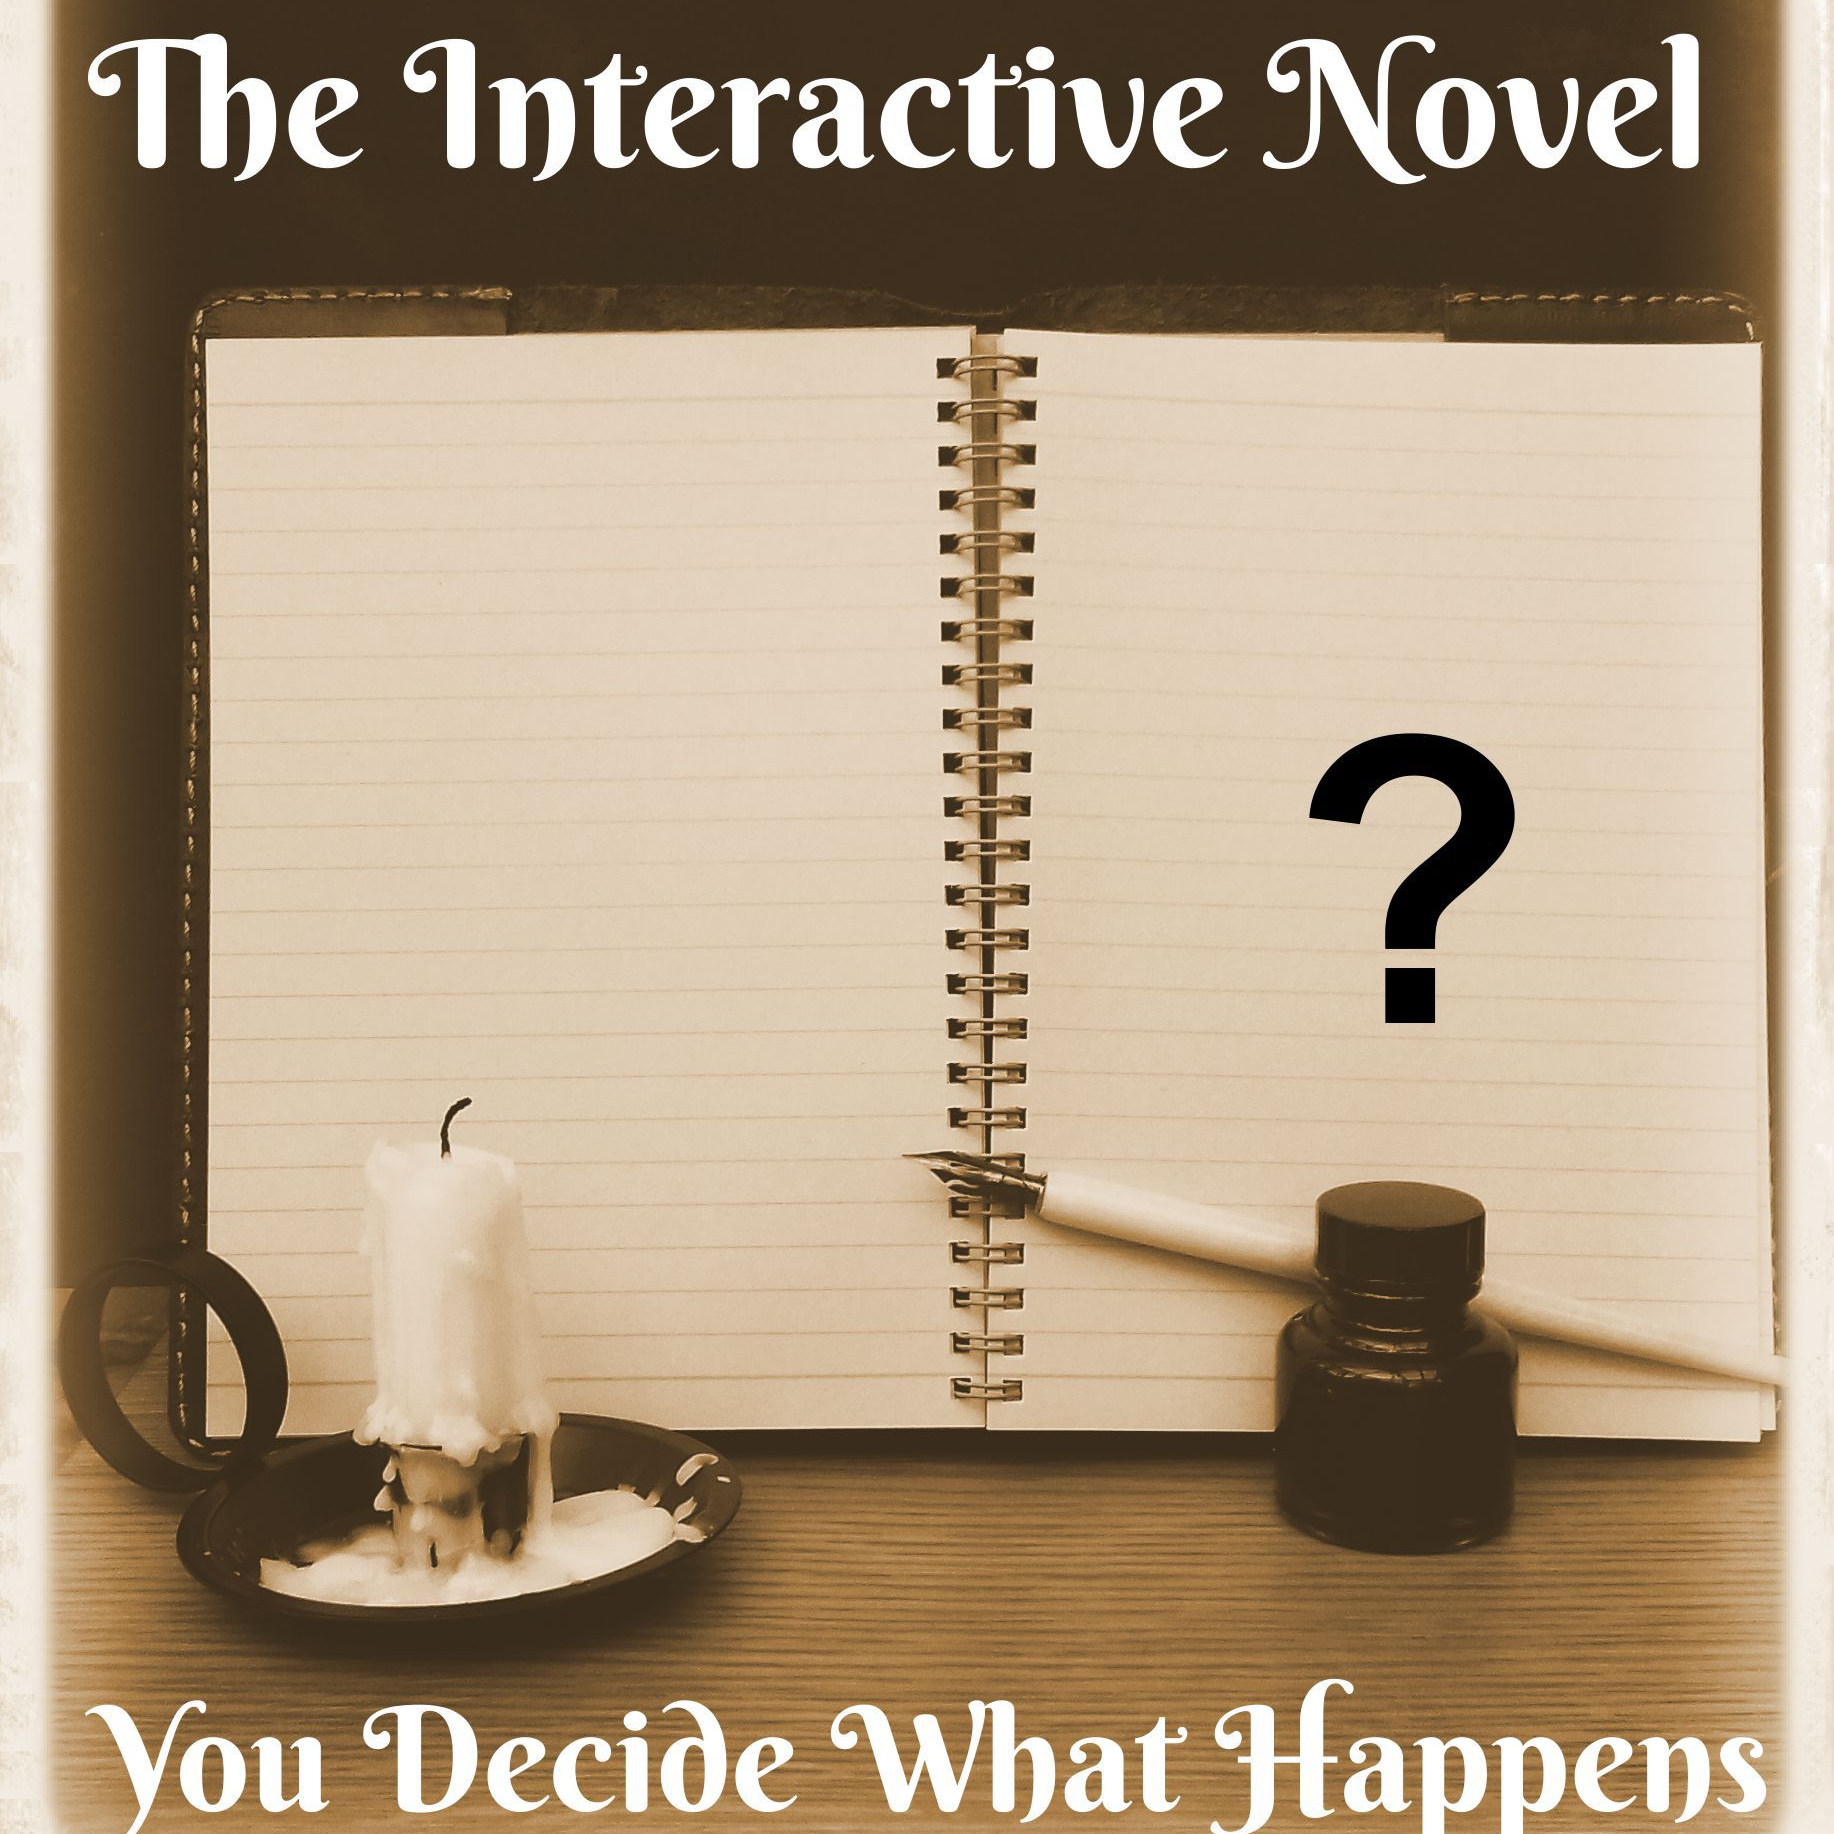 The Interactive Novel